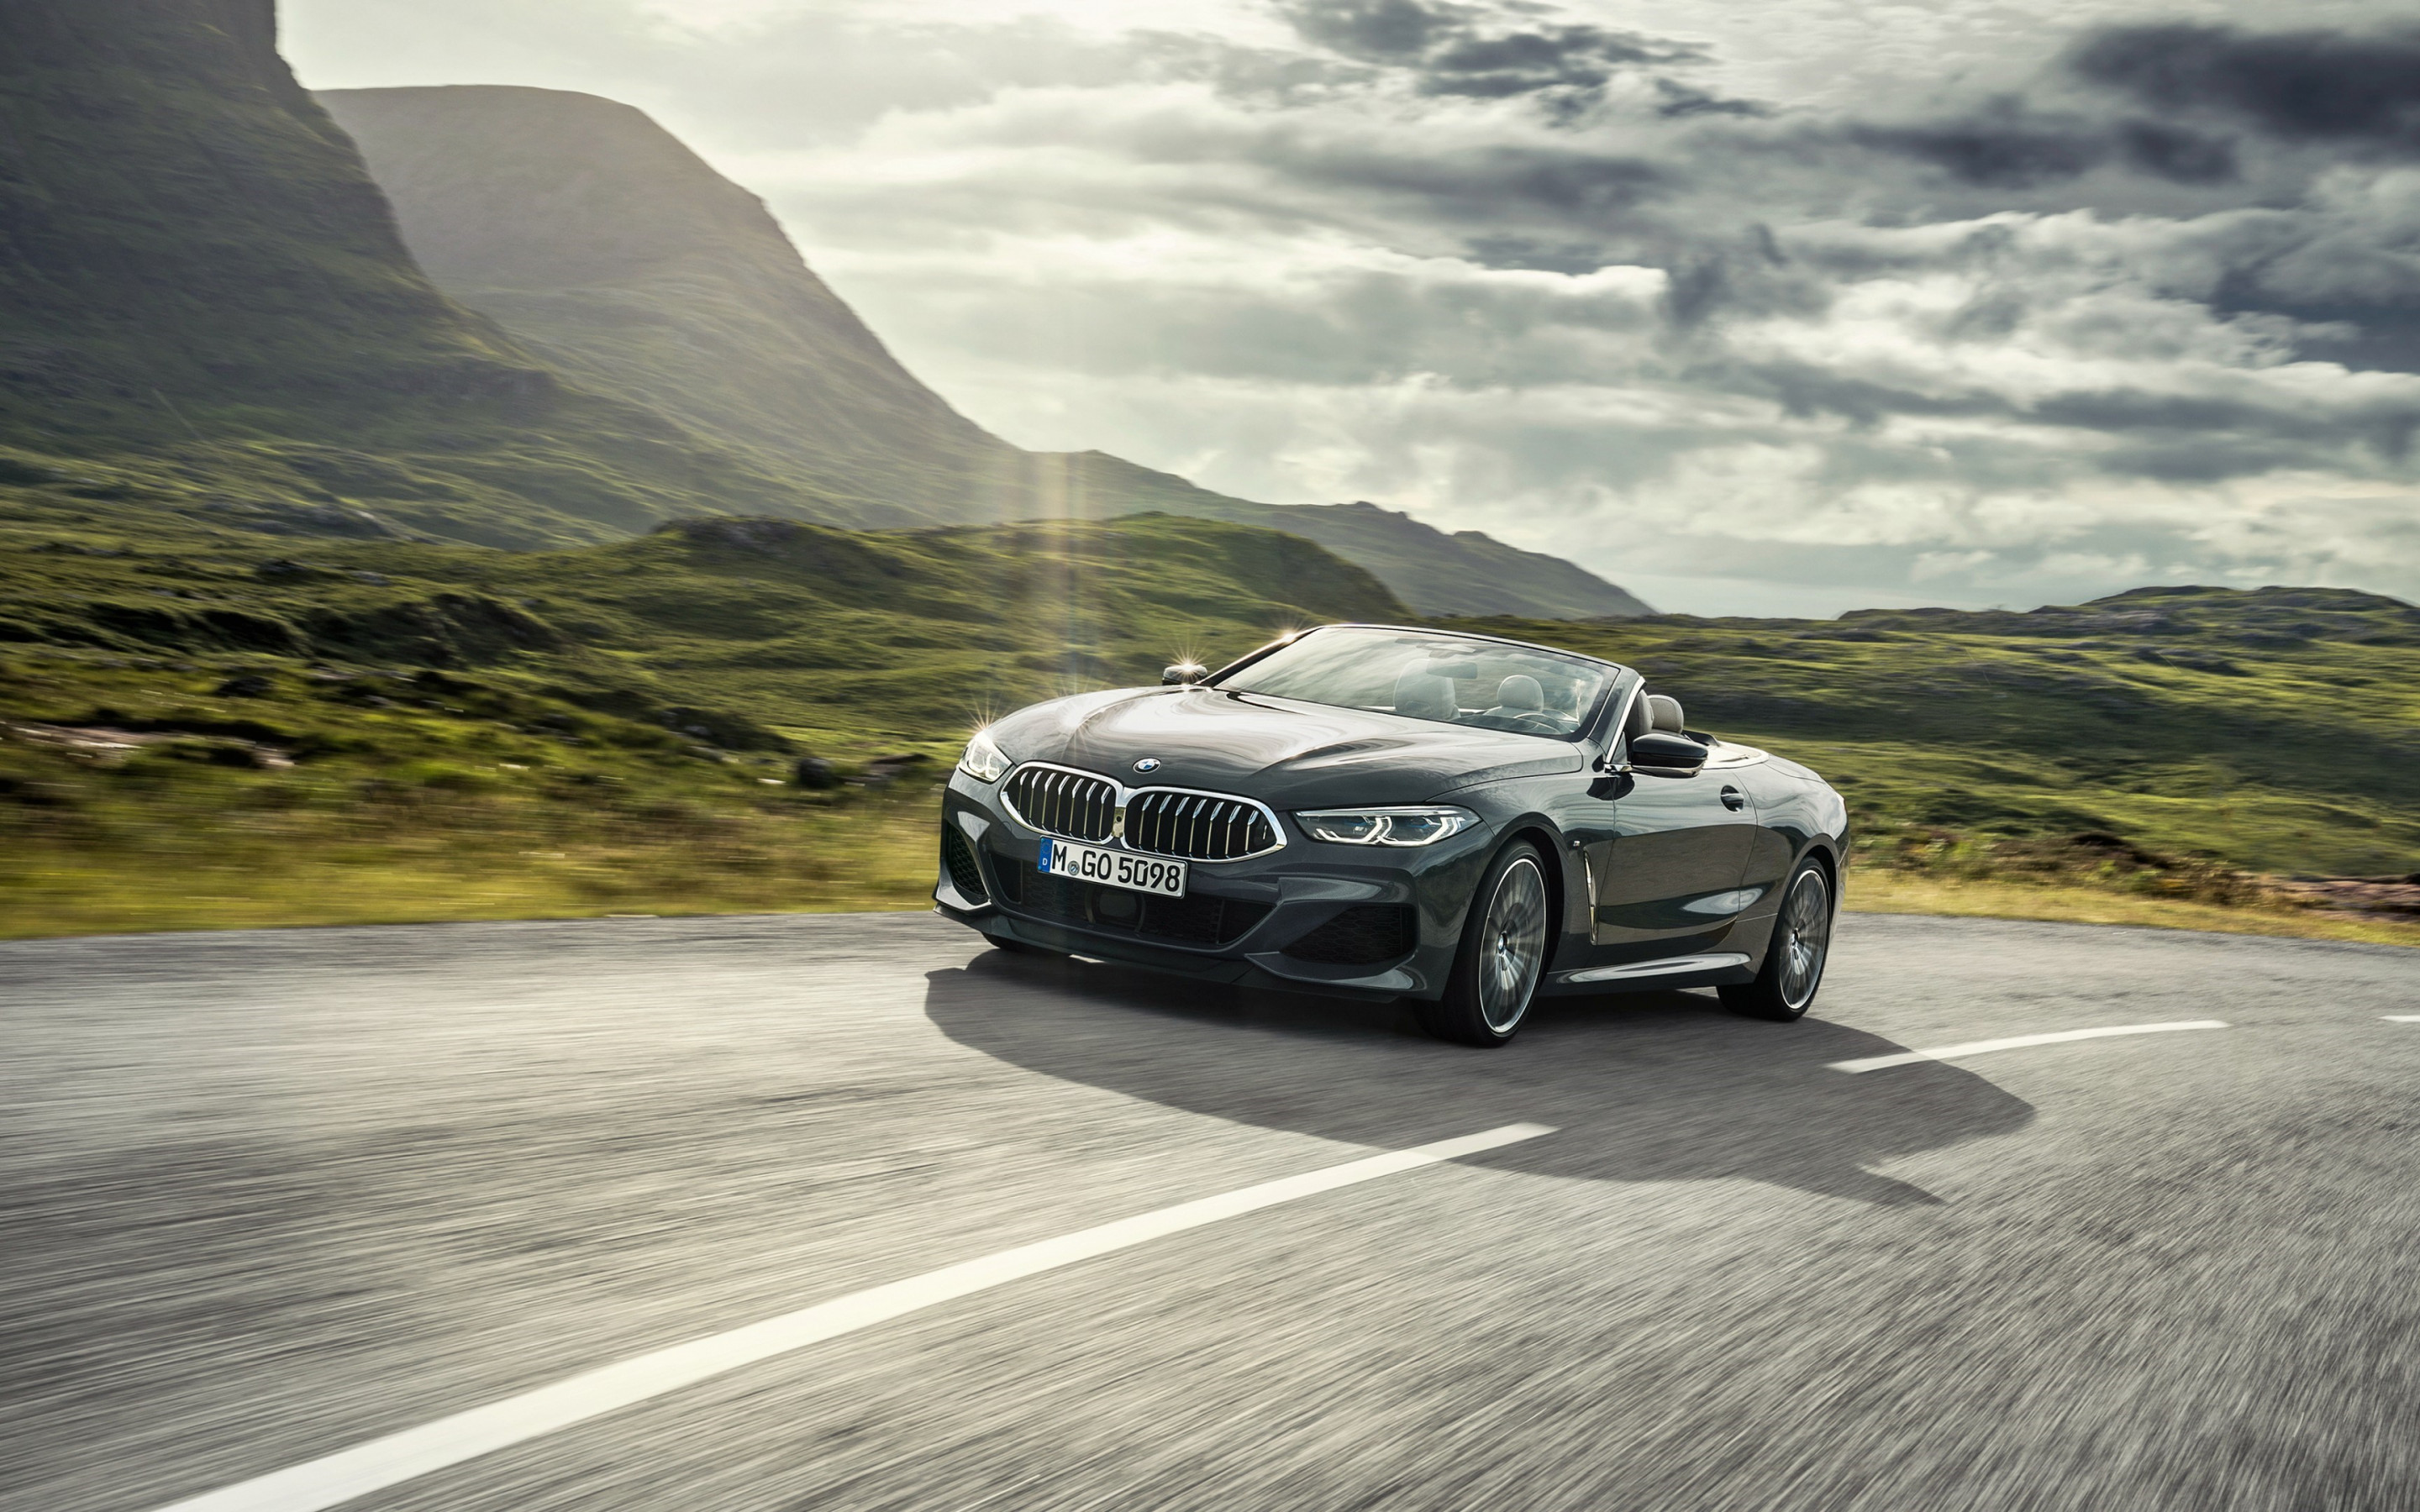 BMW 8 Series Convertible wallpaper 2880x1800